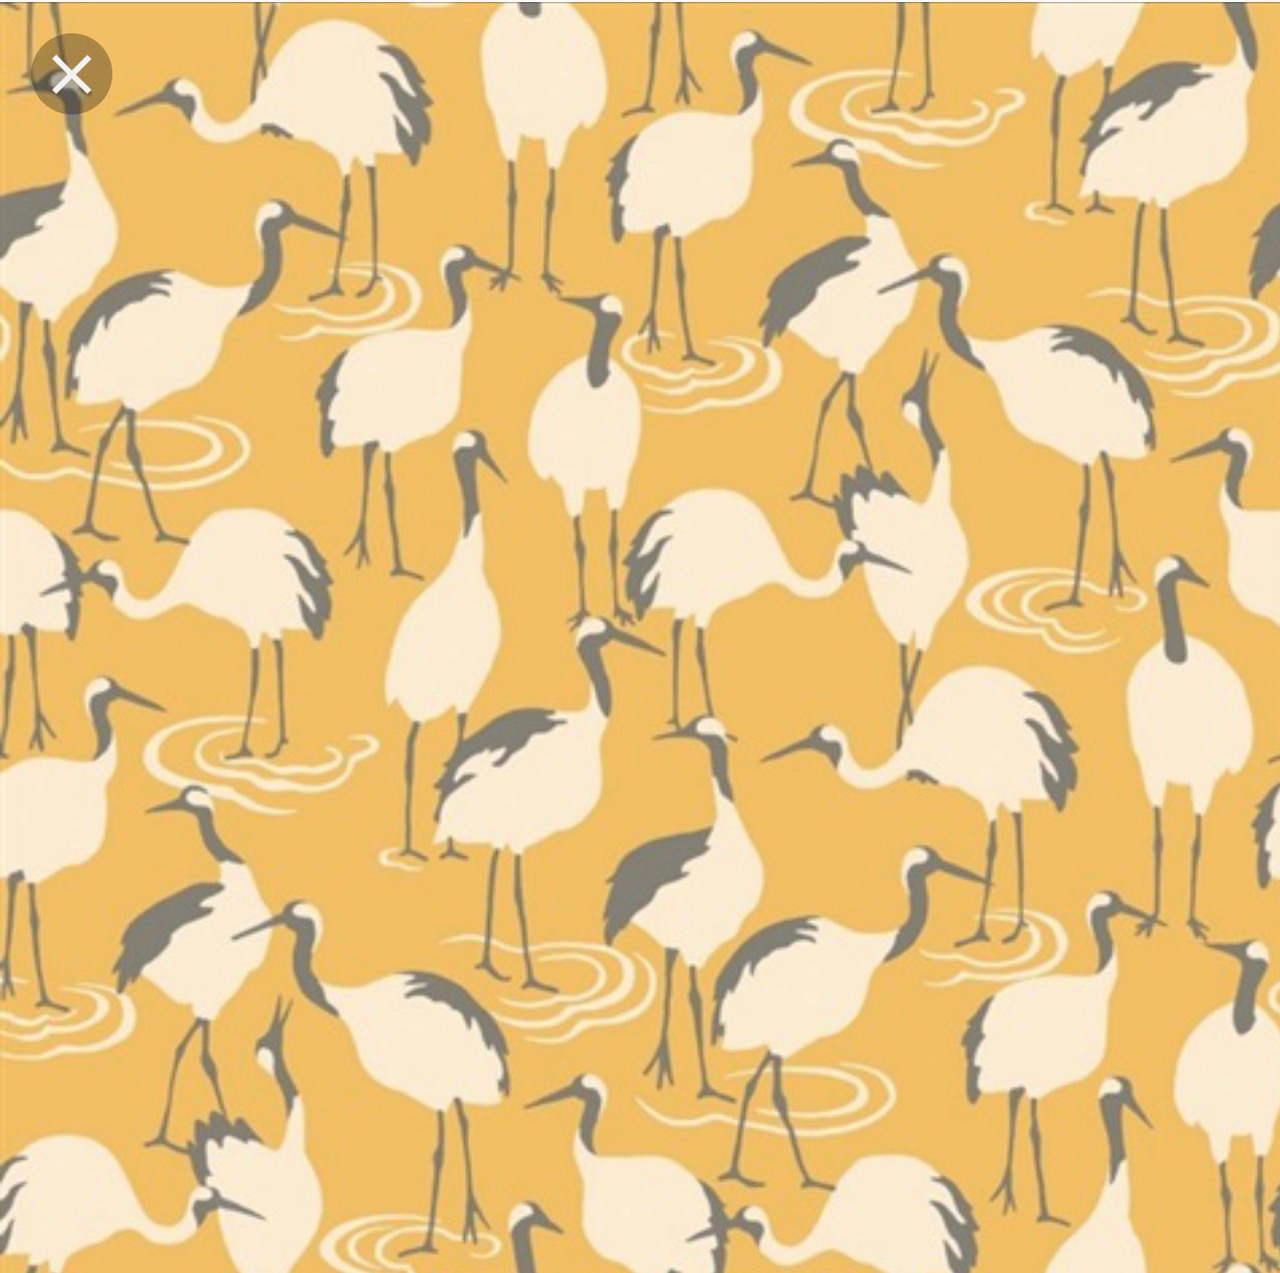 ornithology, Paradis, fine and dandy, bathroom wallpaper, wallpaper for the bathroom, bathroom décor, bathroom inspo, floral bathroom wallpaper, marble wallpaper, pink tile wallpaper, white subway tile wallpaper, herringbone wallpaper, tile progress, herringbone, bird life fabric, Milton and king, Anthropologie, grand heron, dwell studio, , cranes